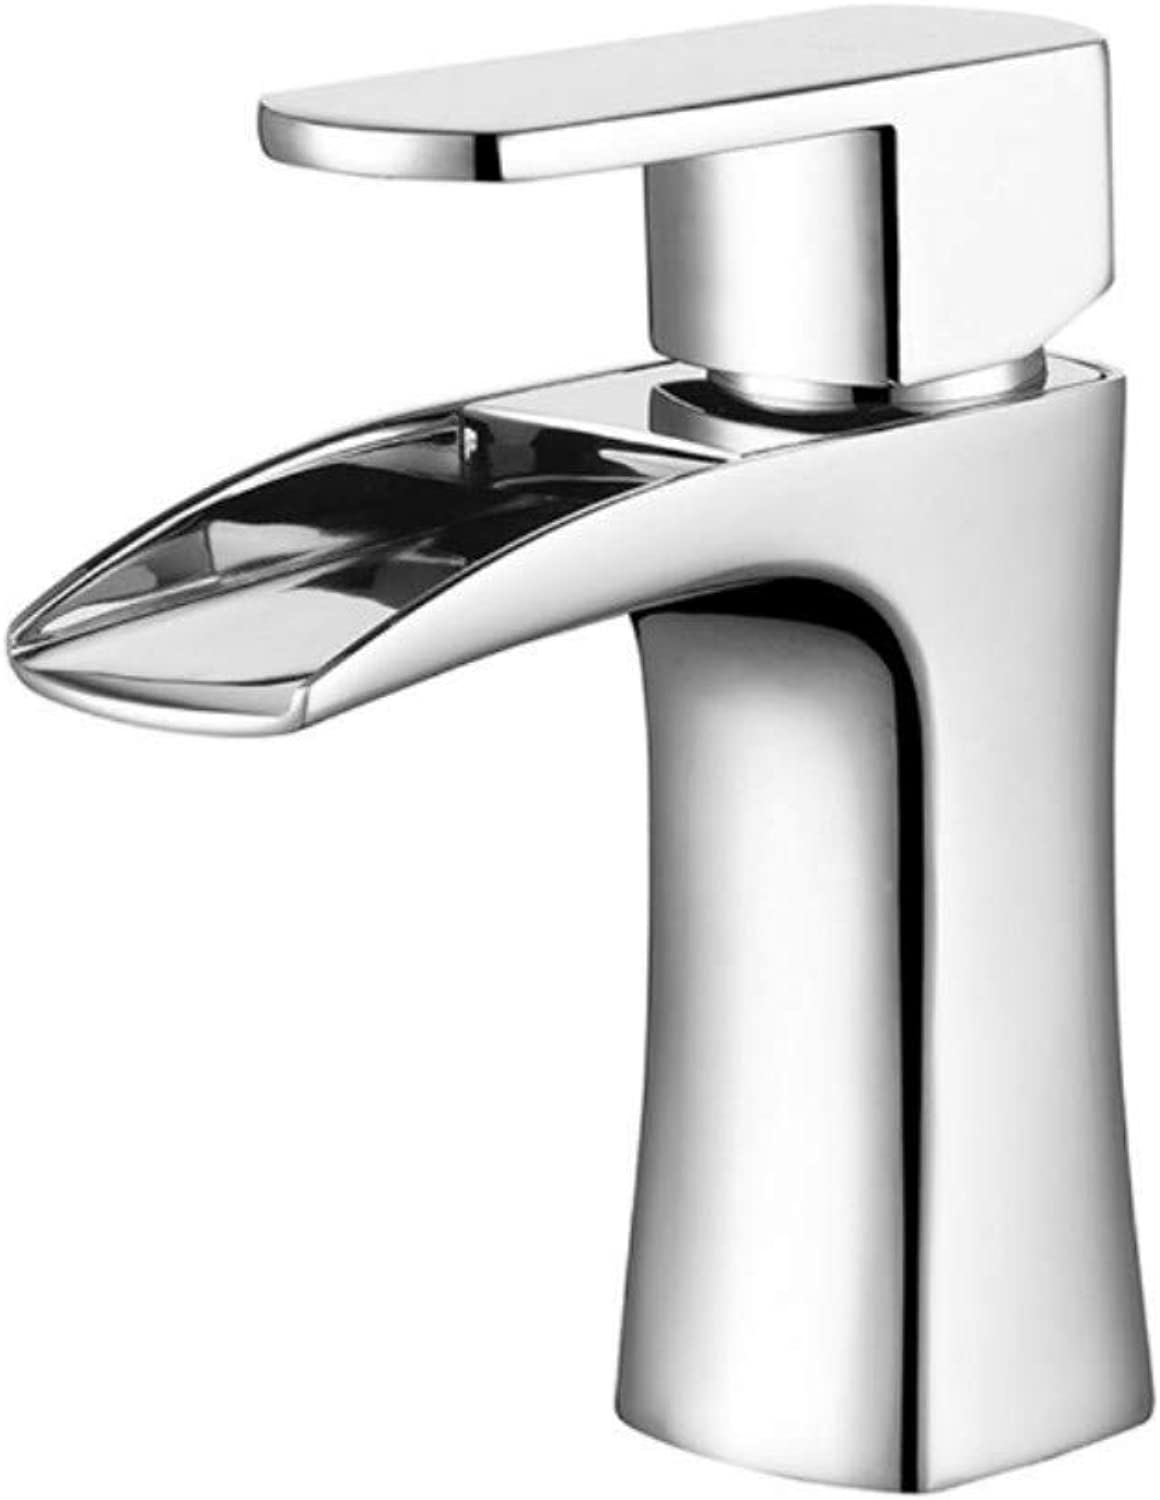 Bathroom Sink Basin Lever Mixer Tap Hot and Cold Taps Lavatory Faucet Chrome